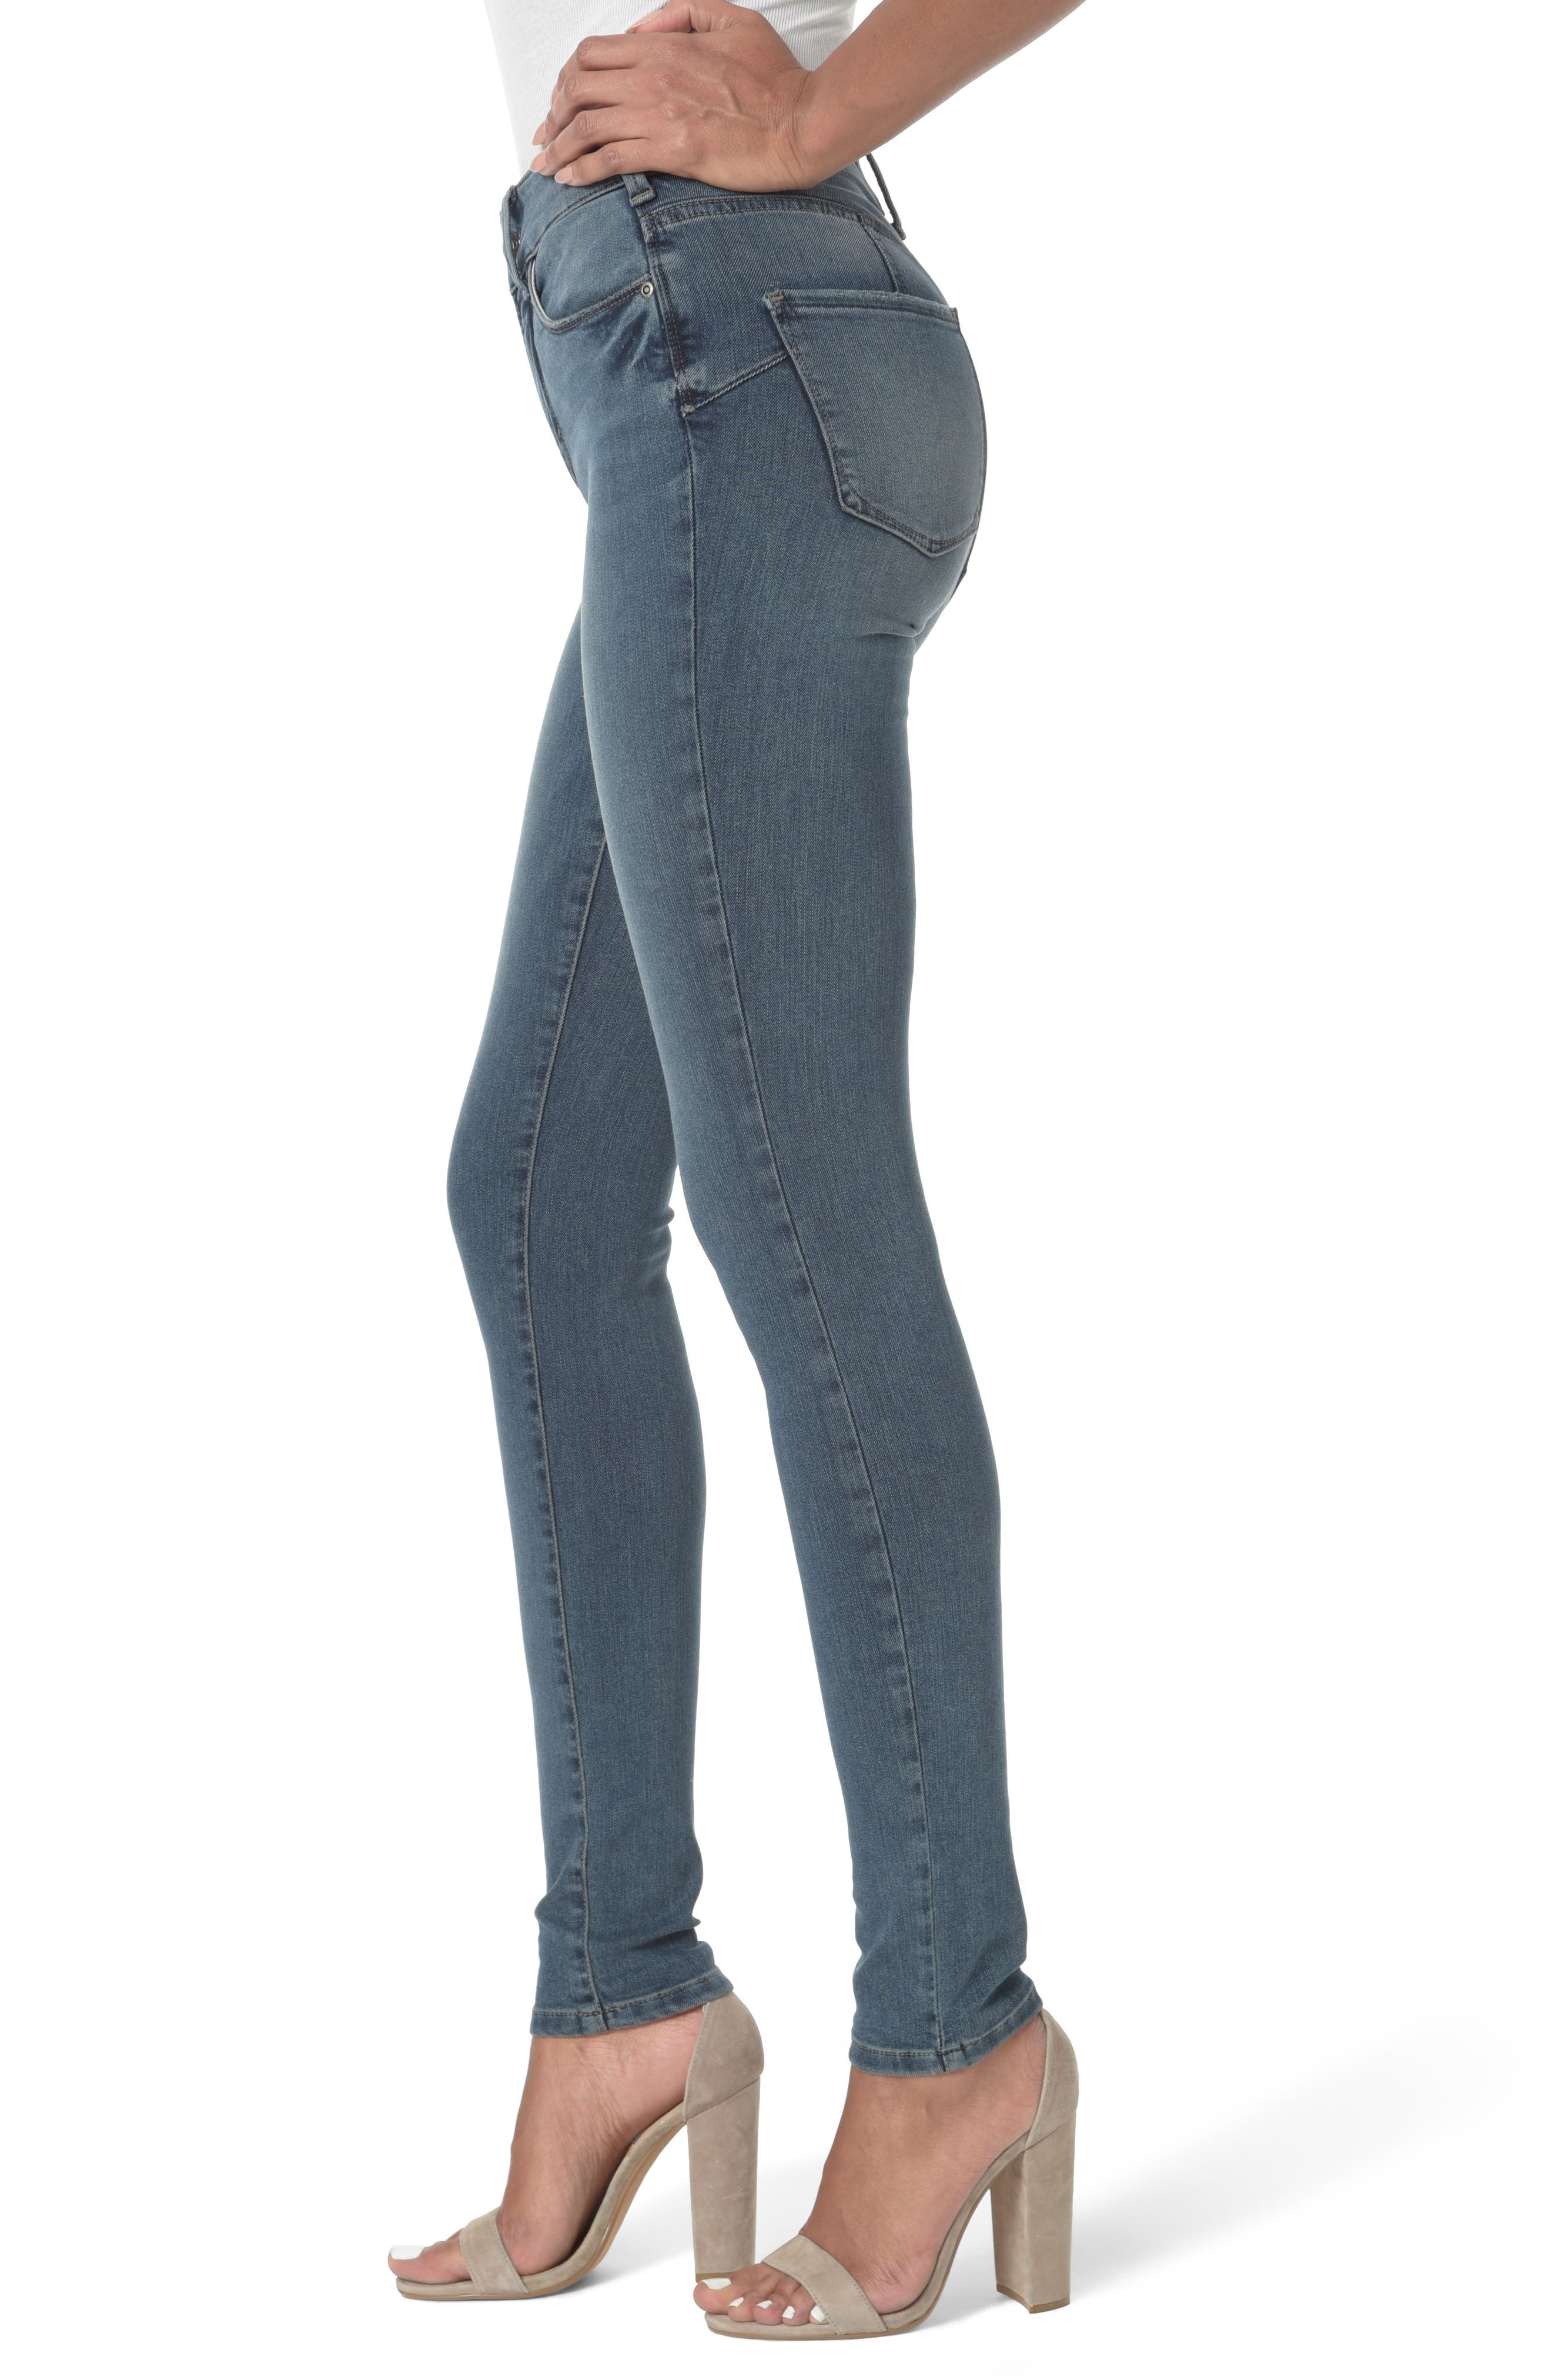 Alina Uplift Stretch Skinny Jeans,                             Alternate thumbnail 3, color,                             403